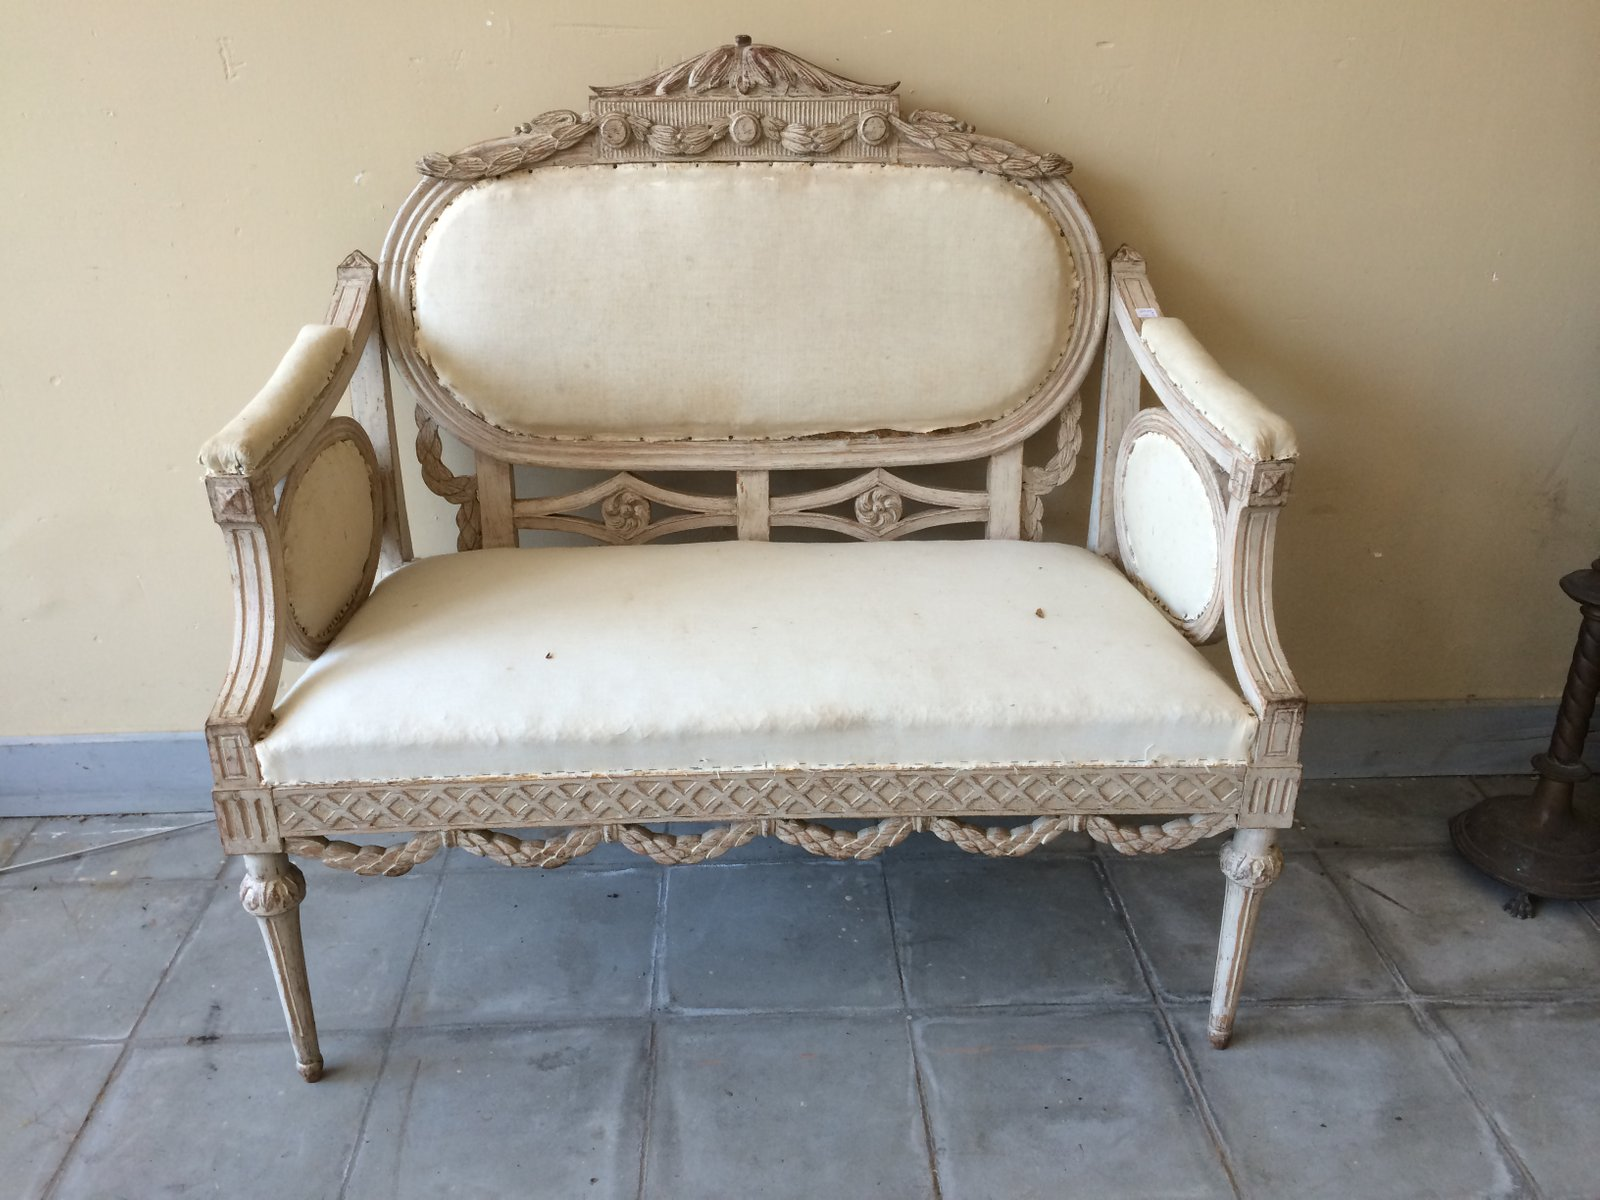 Antique Swedish Sofa 1840s for sale at Pamono